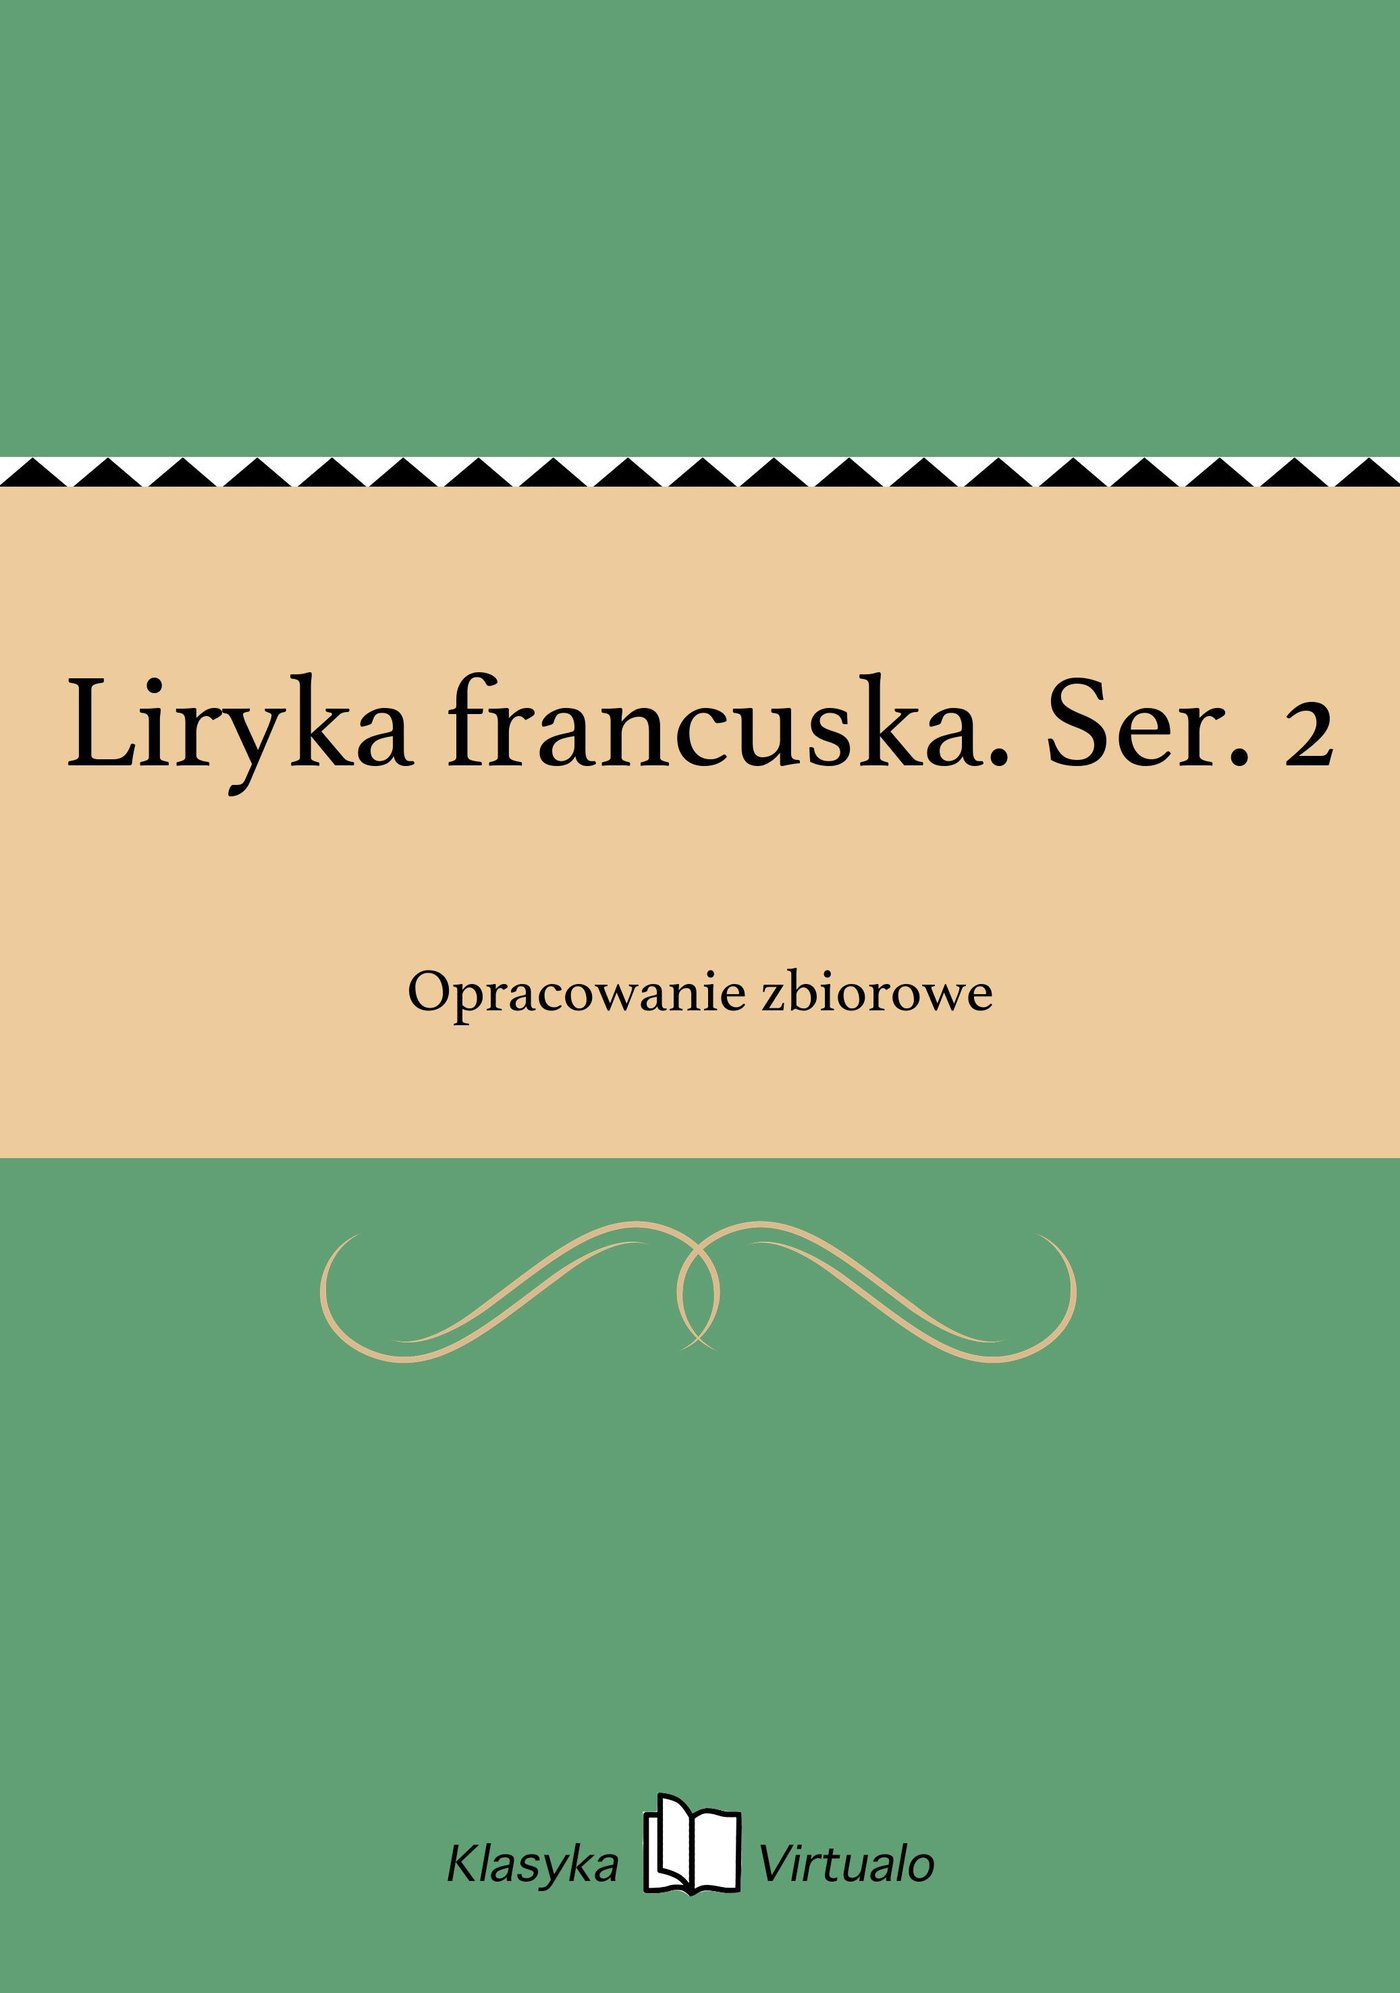 Liryka francuska. Ser. 2 - Ebook (Książka EPUB) do pobrania w formacie EPUB